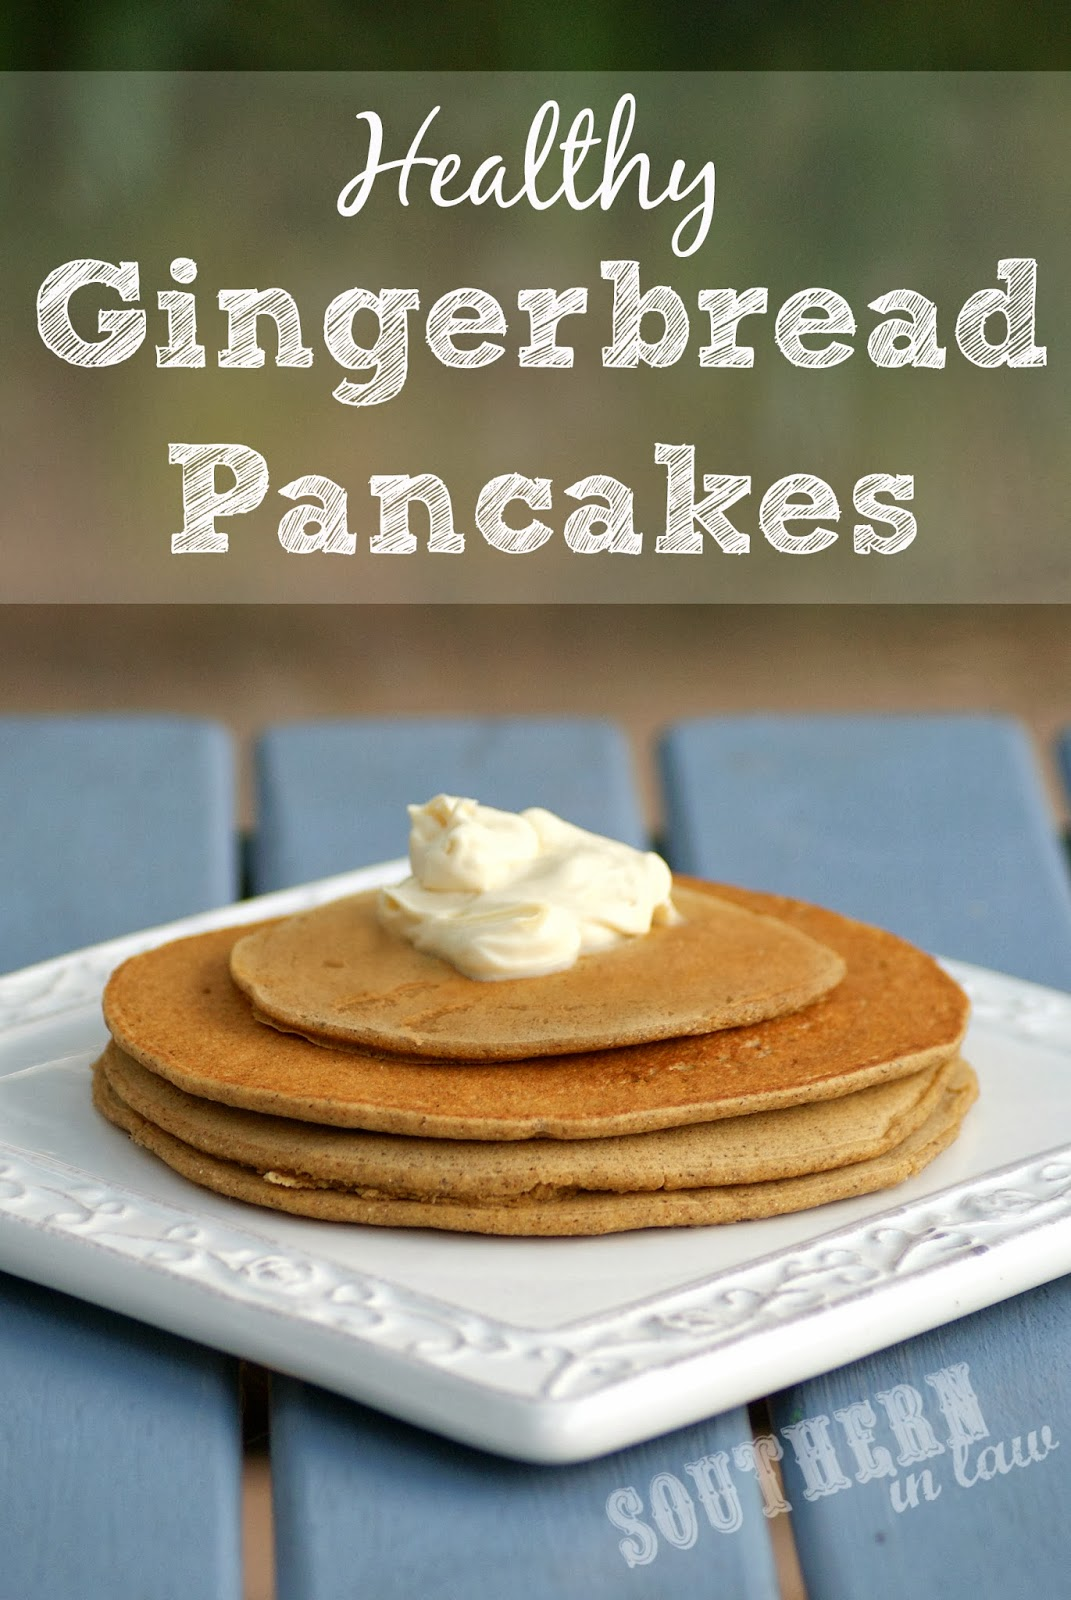 Healthy Gingerbread Pancake Recipe - Gluten Free, Low Fat, Sugar Free